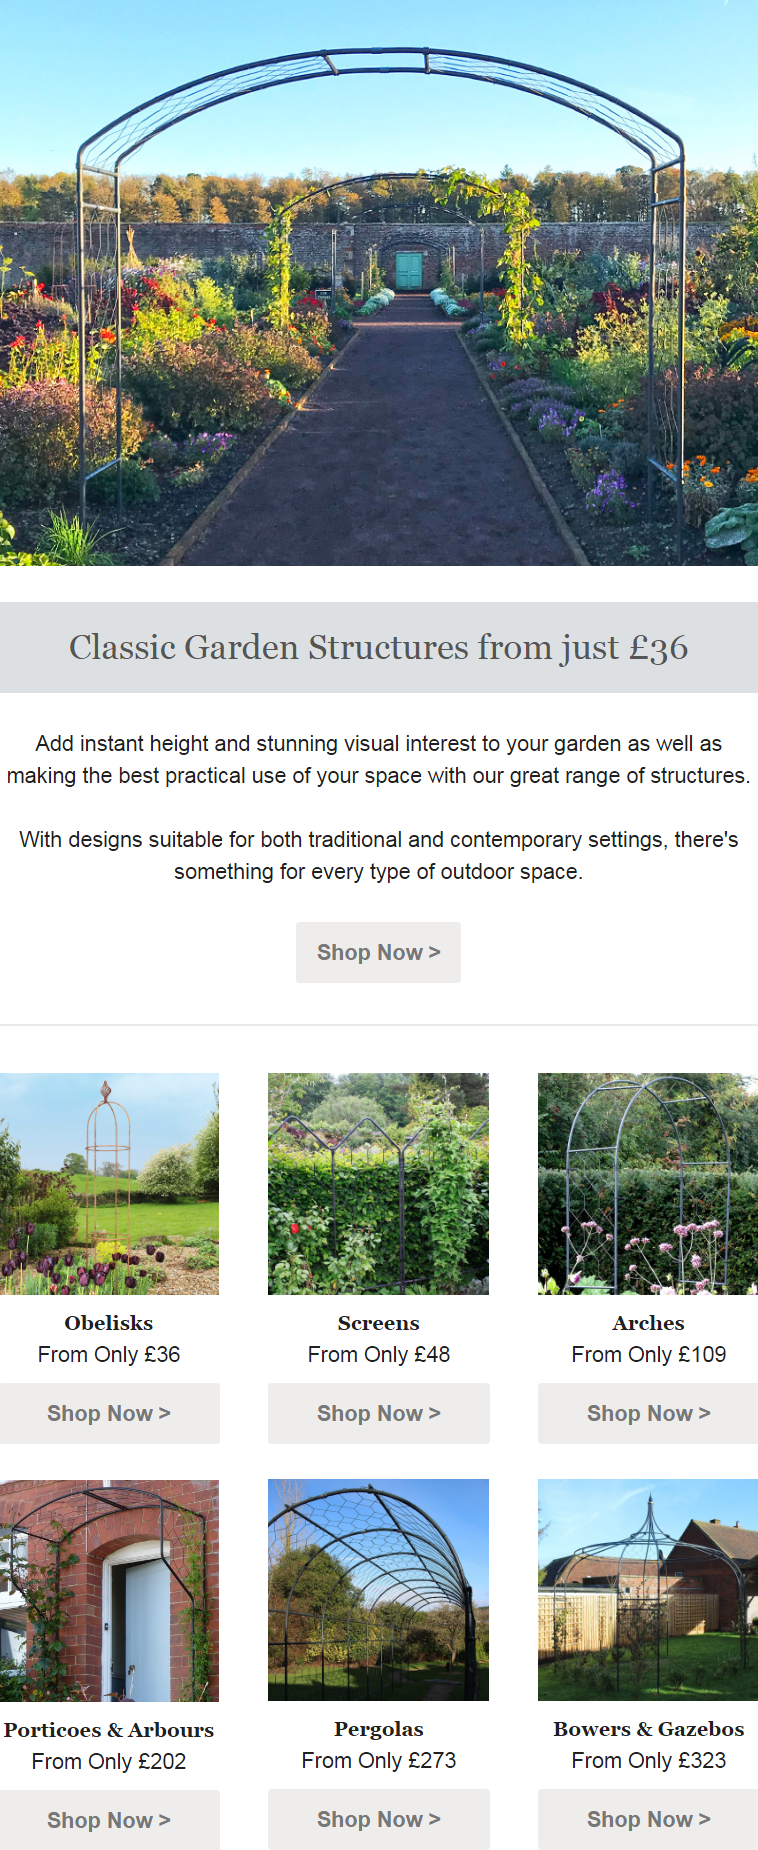 Add instant height and stunning visual interest to your garden as well as making the best practical ...